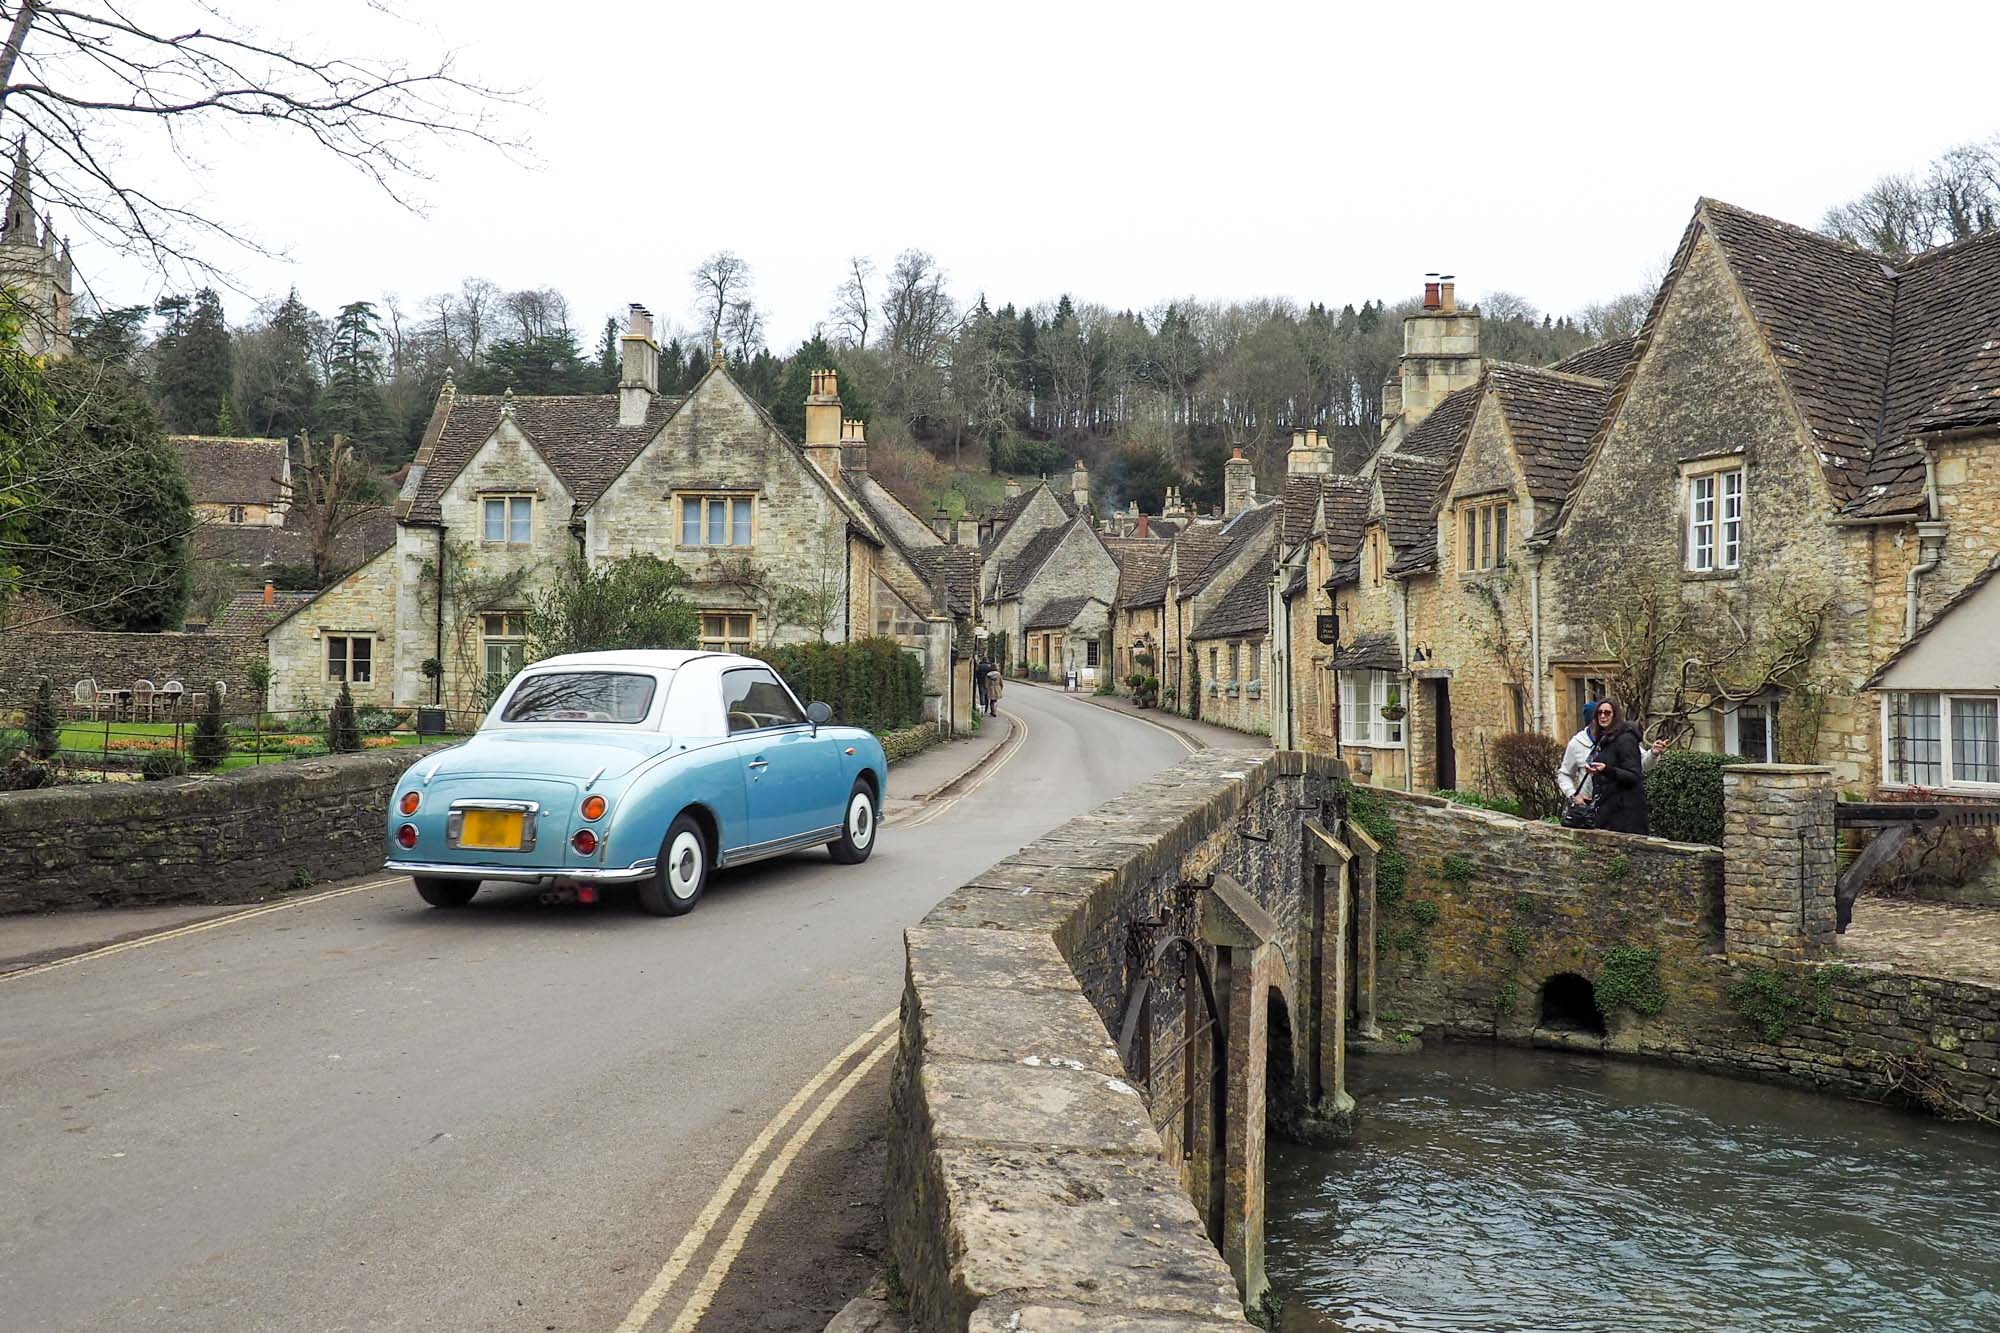 Castle Combe A Fairytale Village In The Cotswolds City